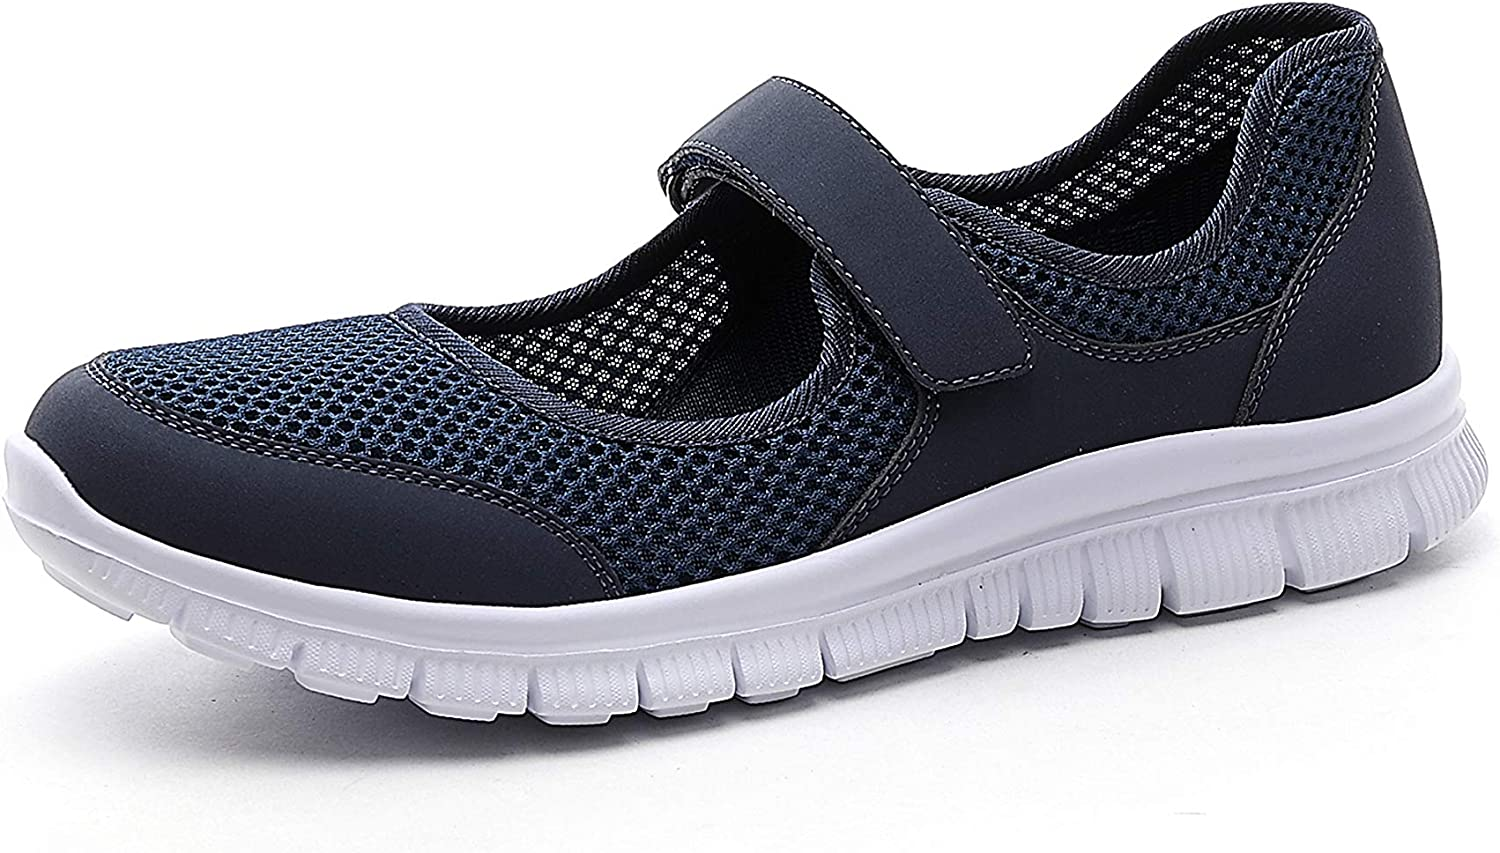 CentroPoint Women's Casual Walking Shoes Ladies Breathable Mesh Mary Jane Sneakers Lightweight Flats Comfy Trainers Fitness Nurse Shoes Outdoor Sandals